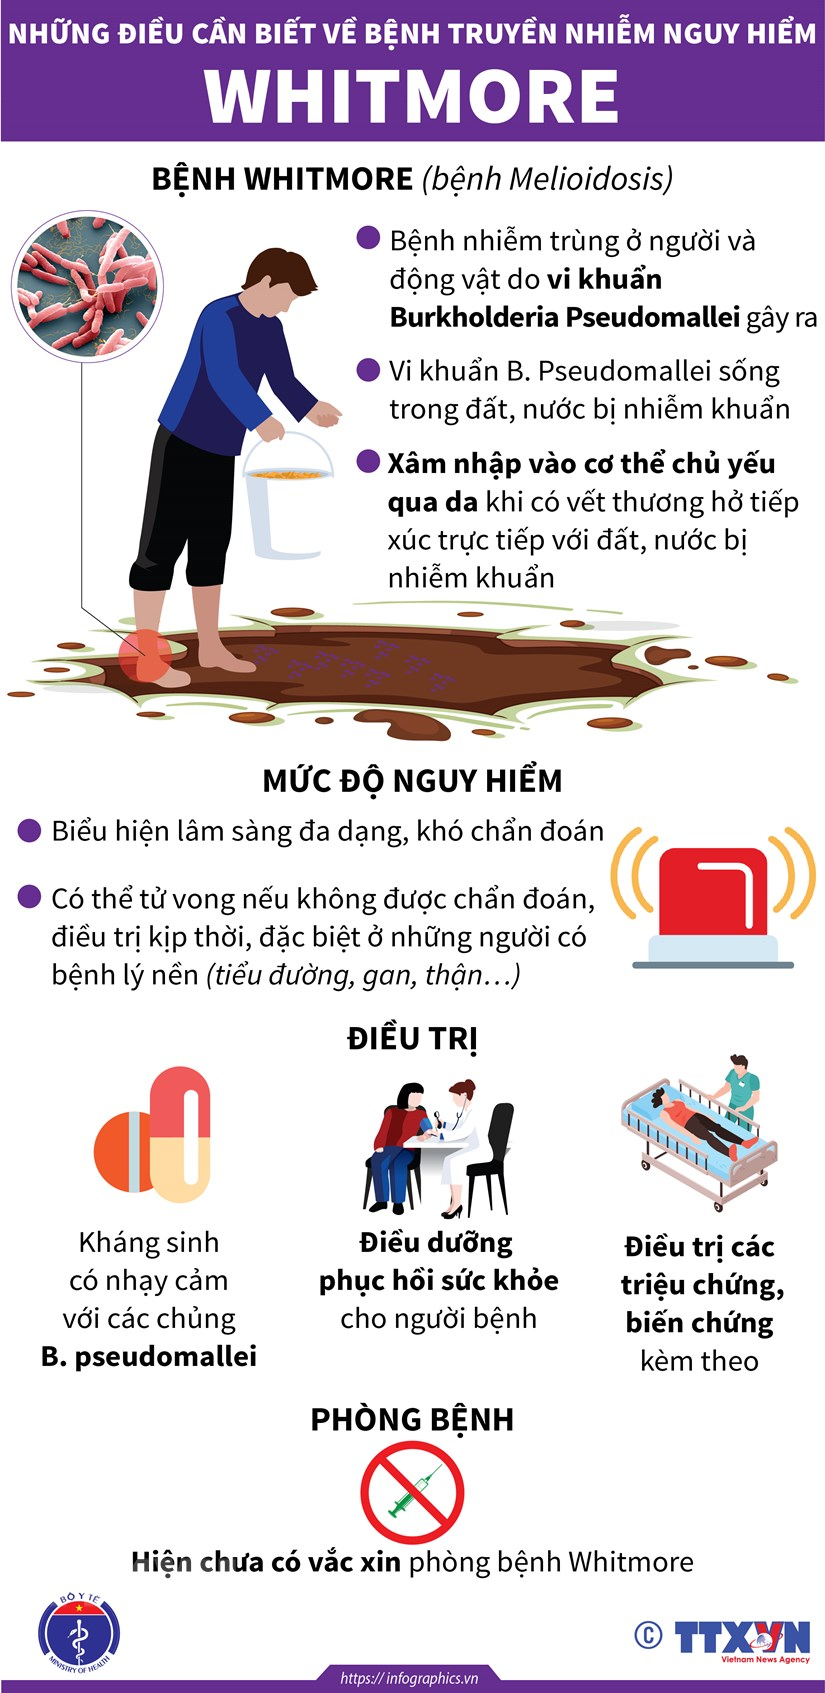 [Infographics] Nhung dieu can biet ve can benh nguy hiem Whitmore hinh anh 1